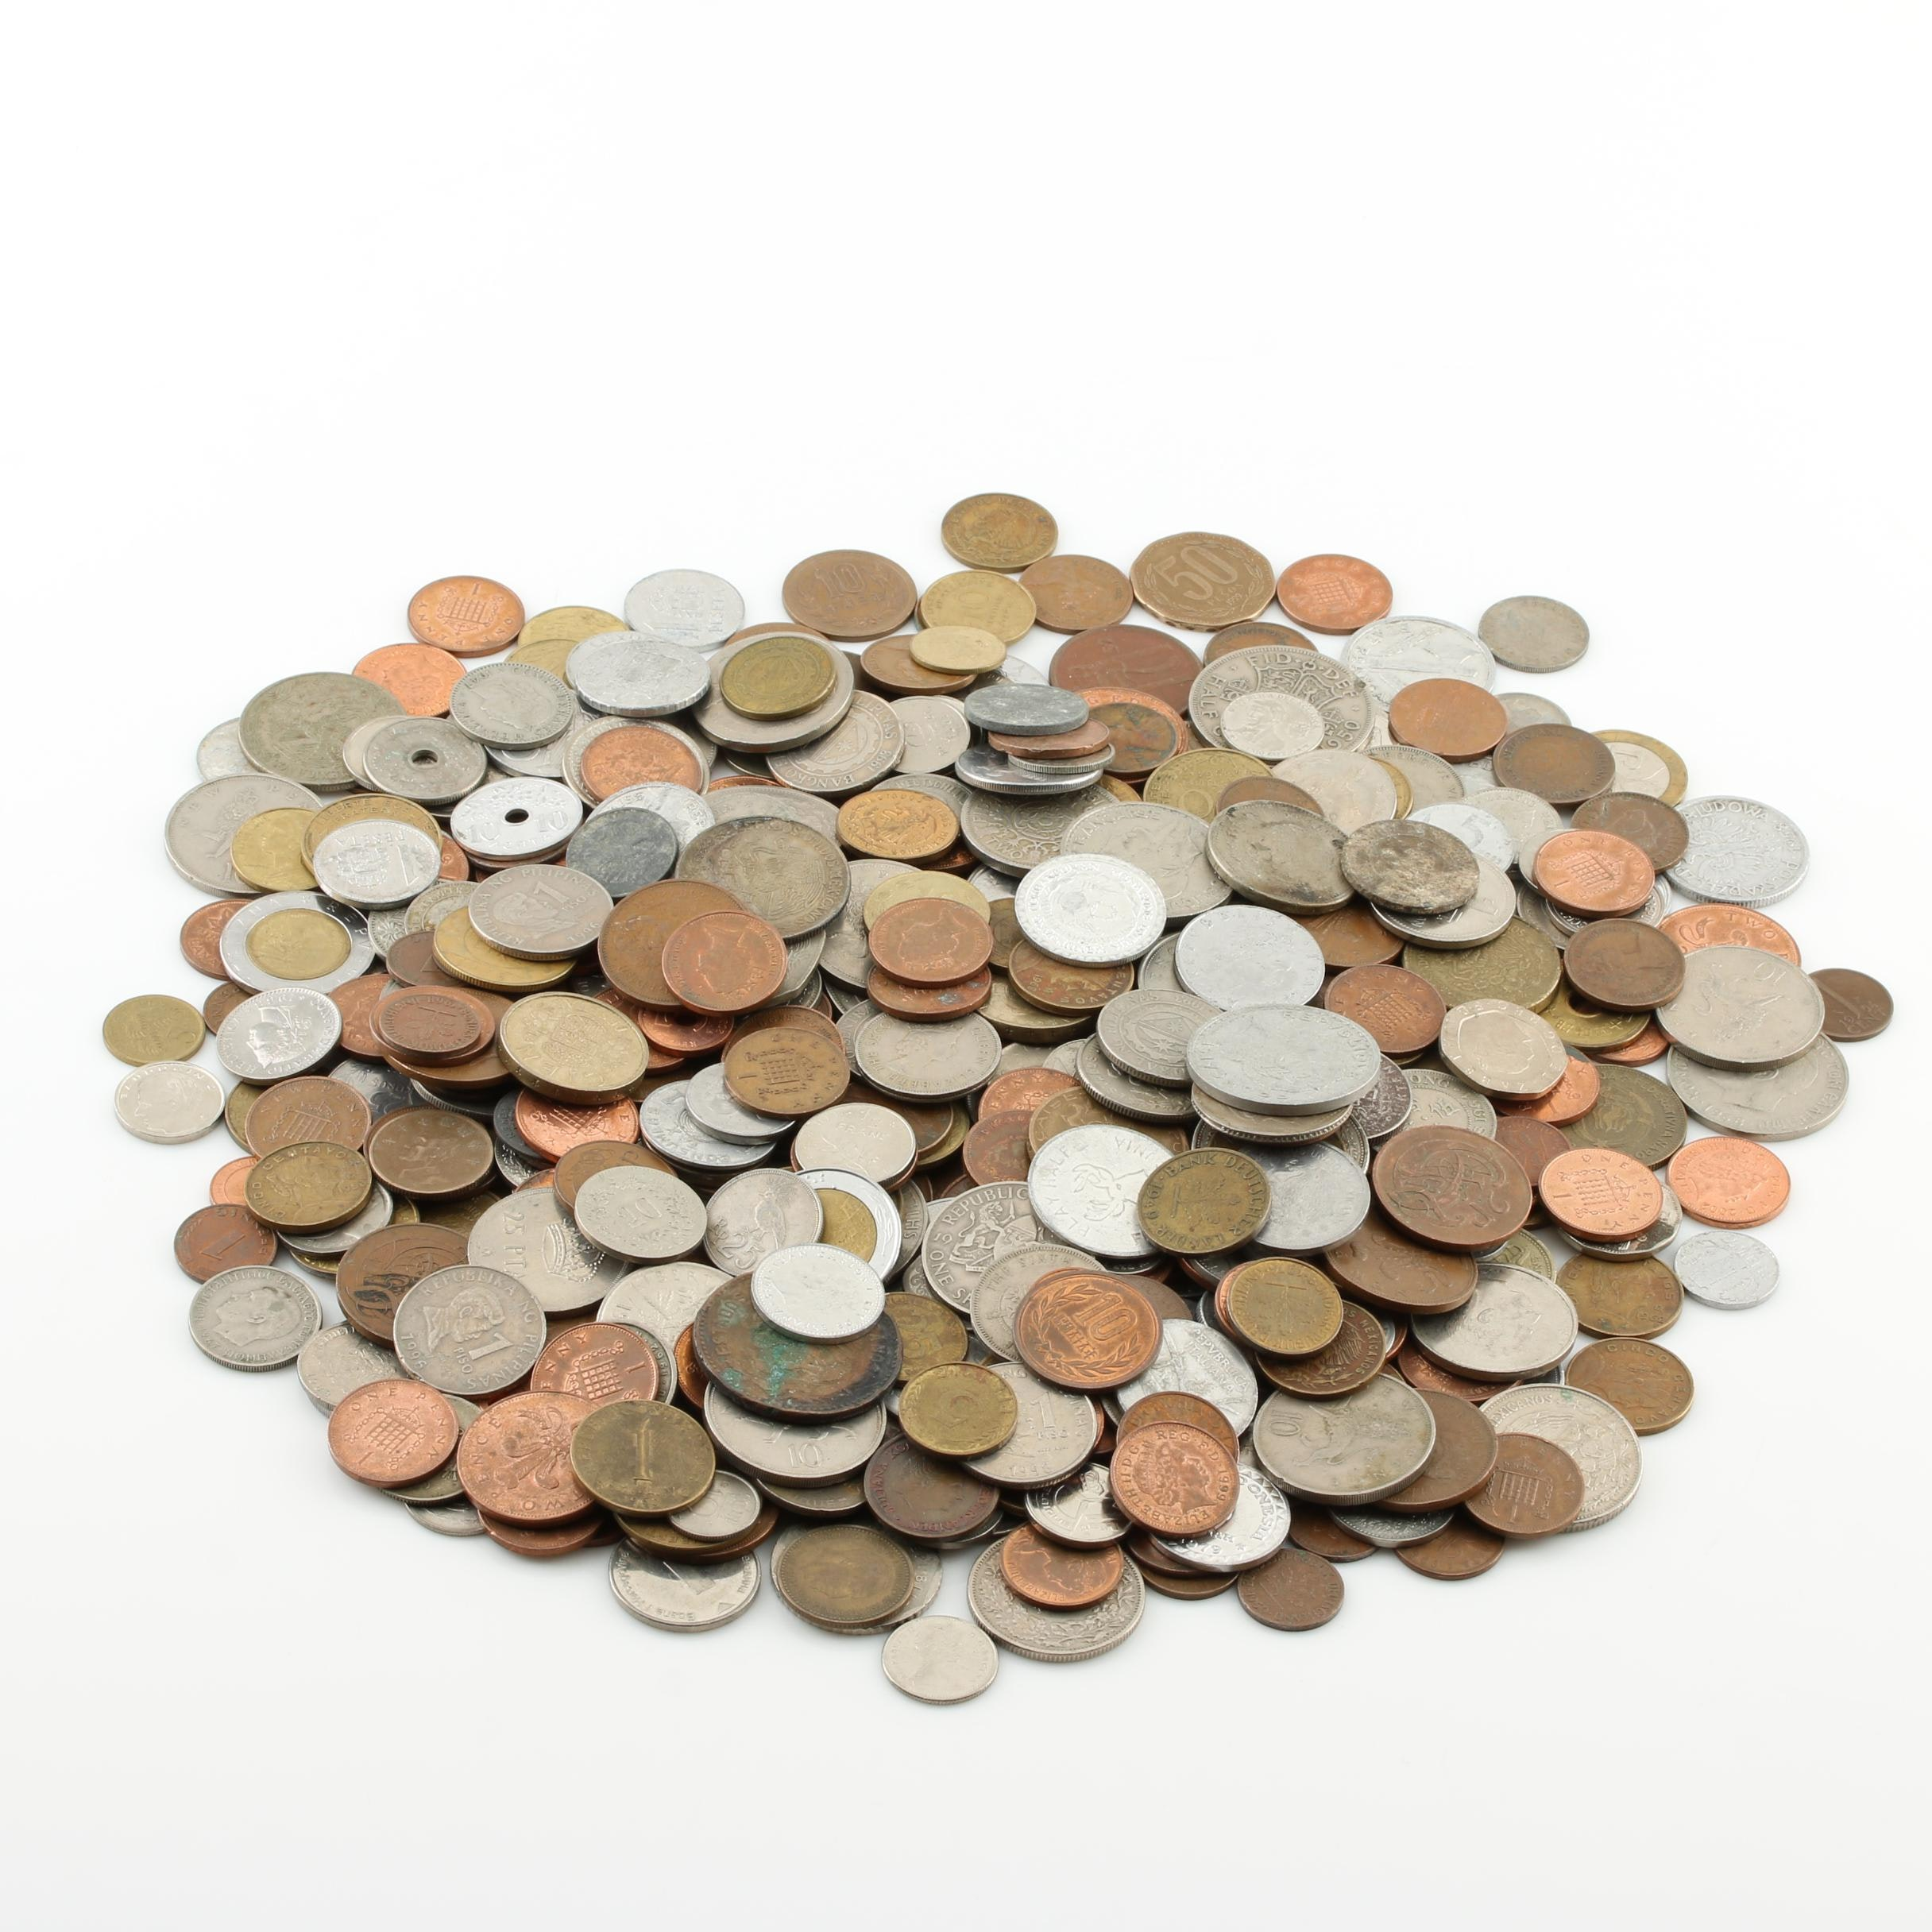 500 Foreign Coins and Tokens